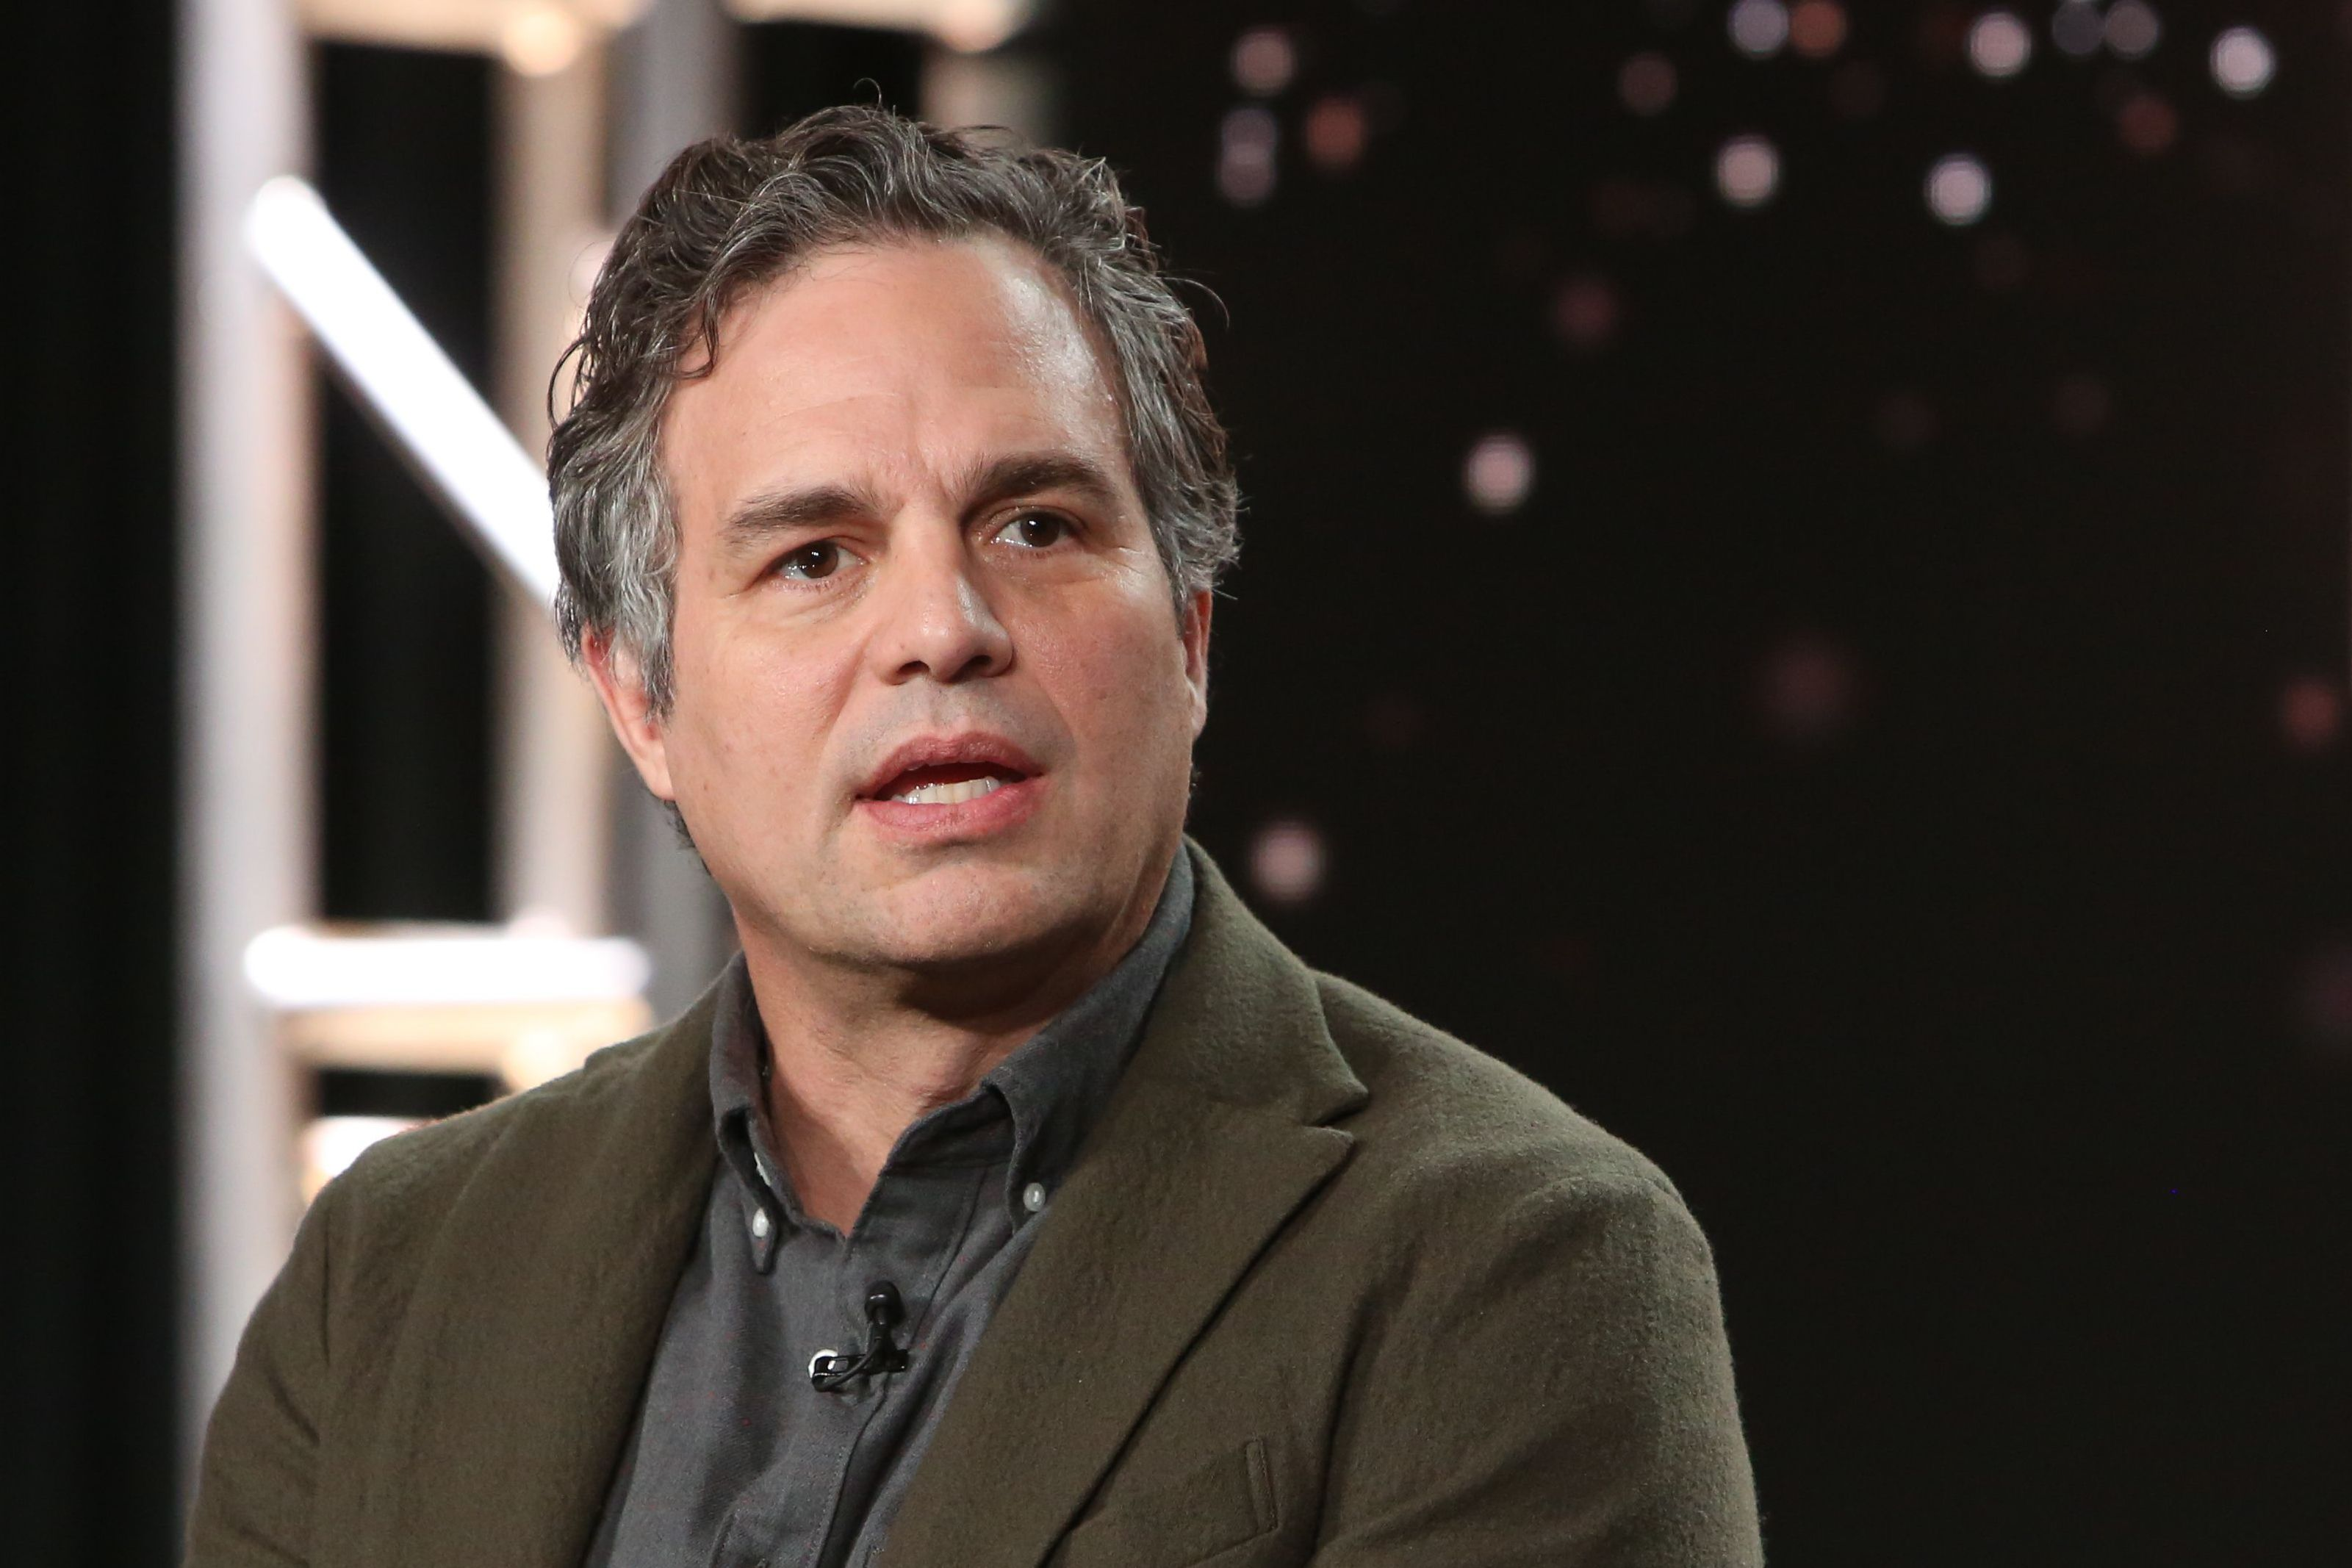 Mark Ruffalo on Gaining 30 Pounds to Play Twins in HBO Series 'I Know This Much Is True'